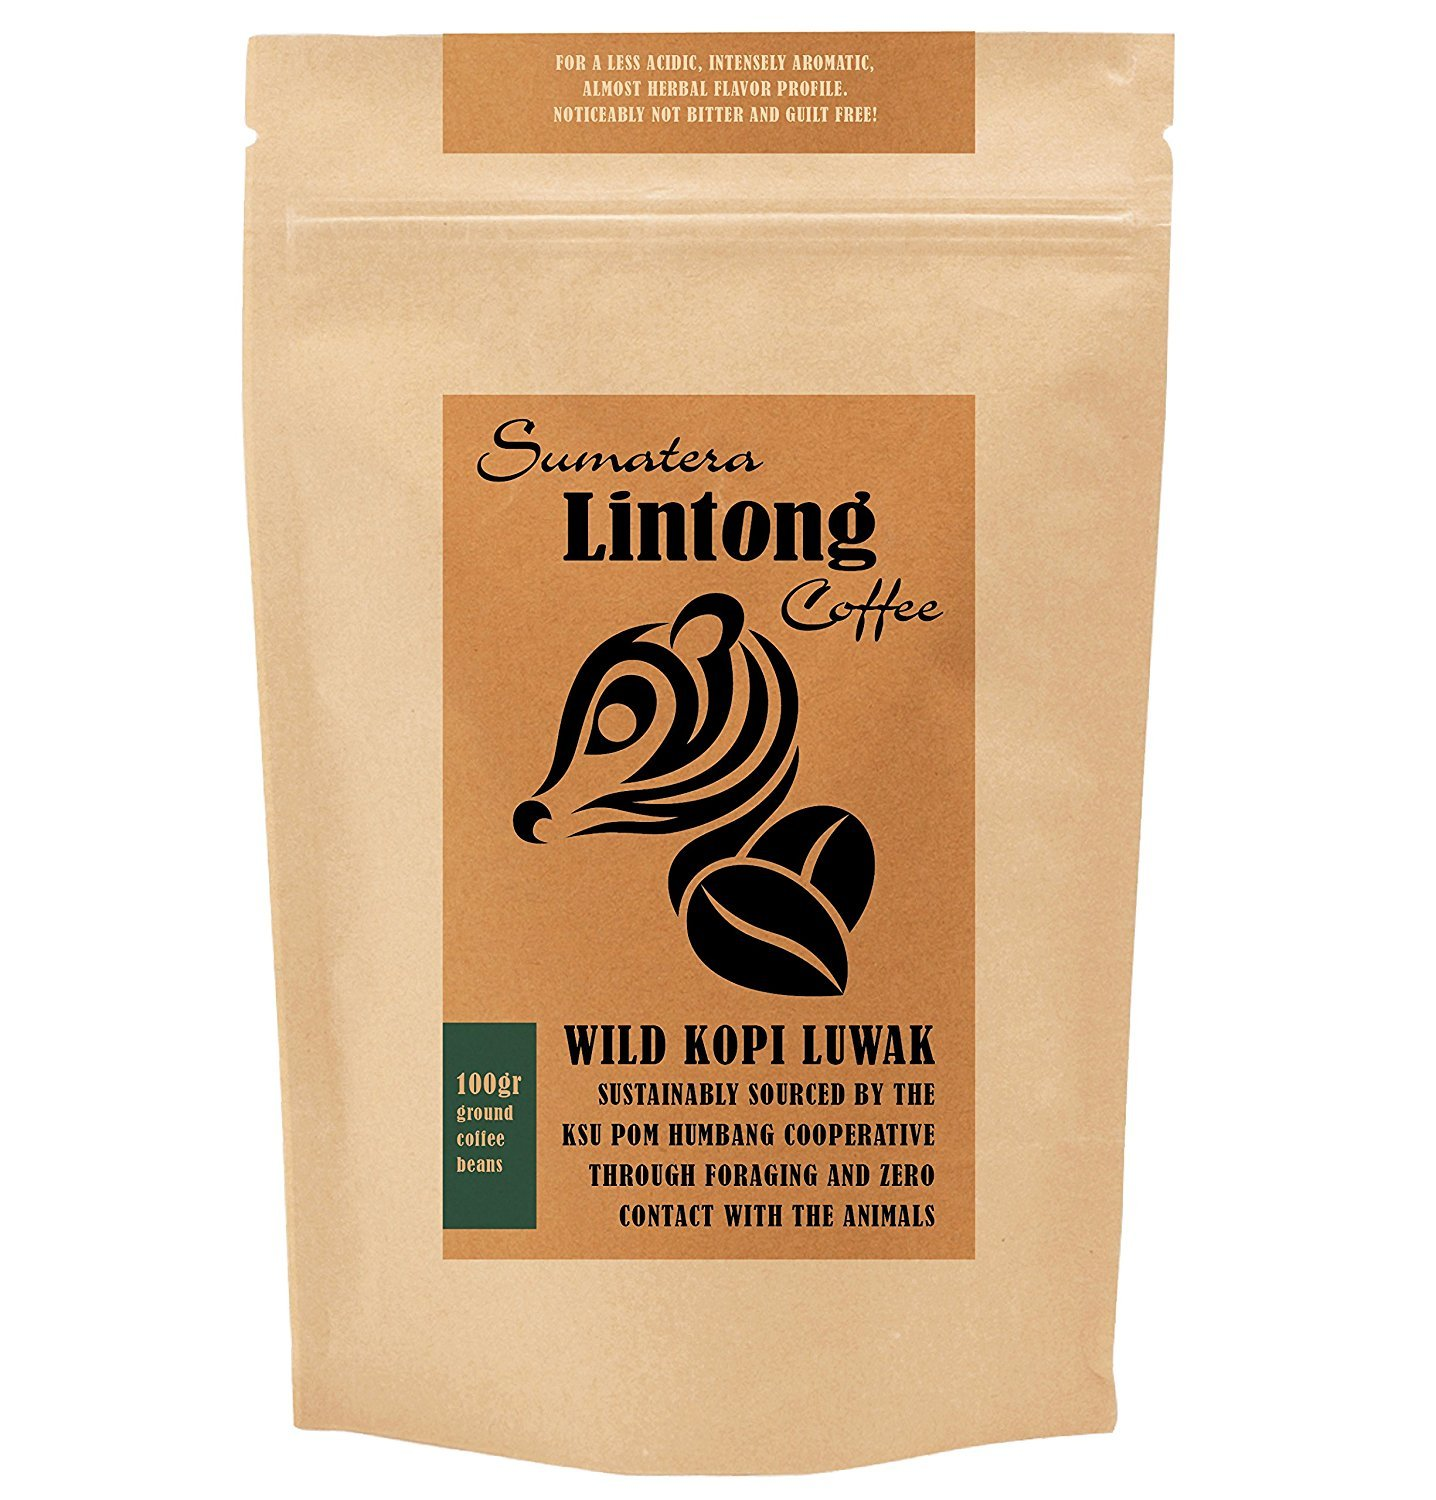 Ground Wild Kopi Luwak, the World's Most Exclusive Coffee, Sustainably Sourced From Sumatra, Indonesia (Ground Coffee, 100gr)